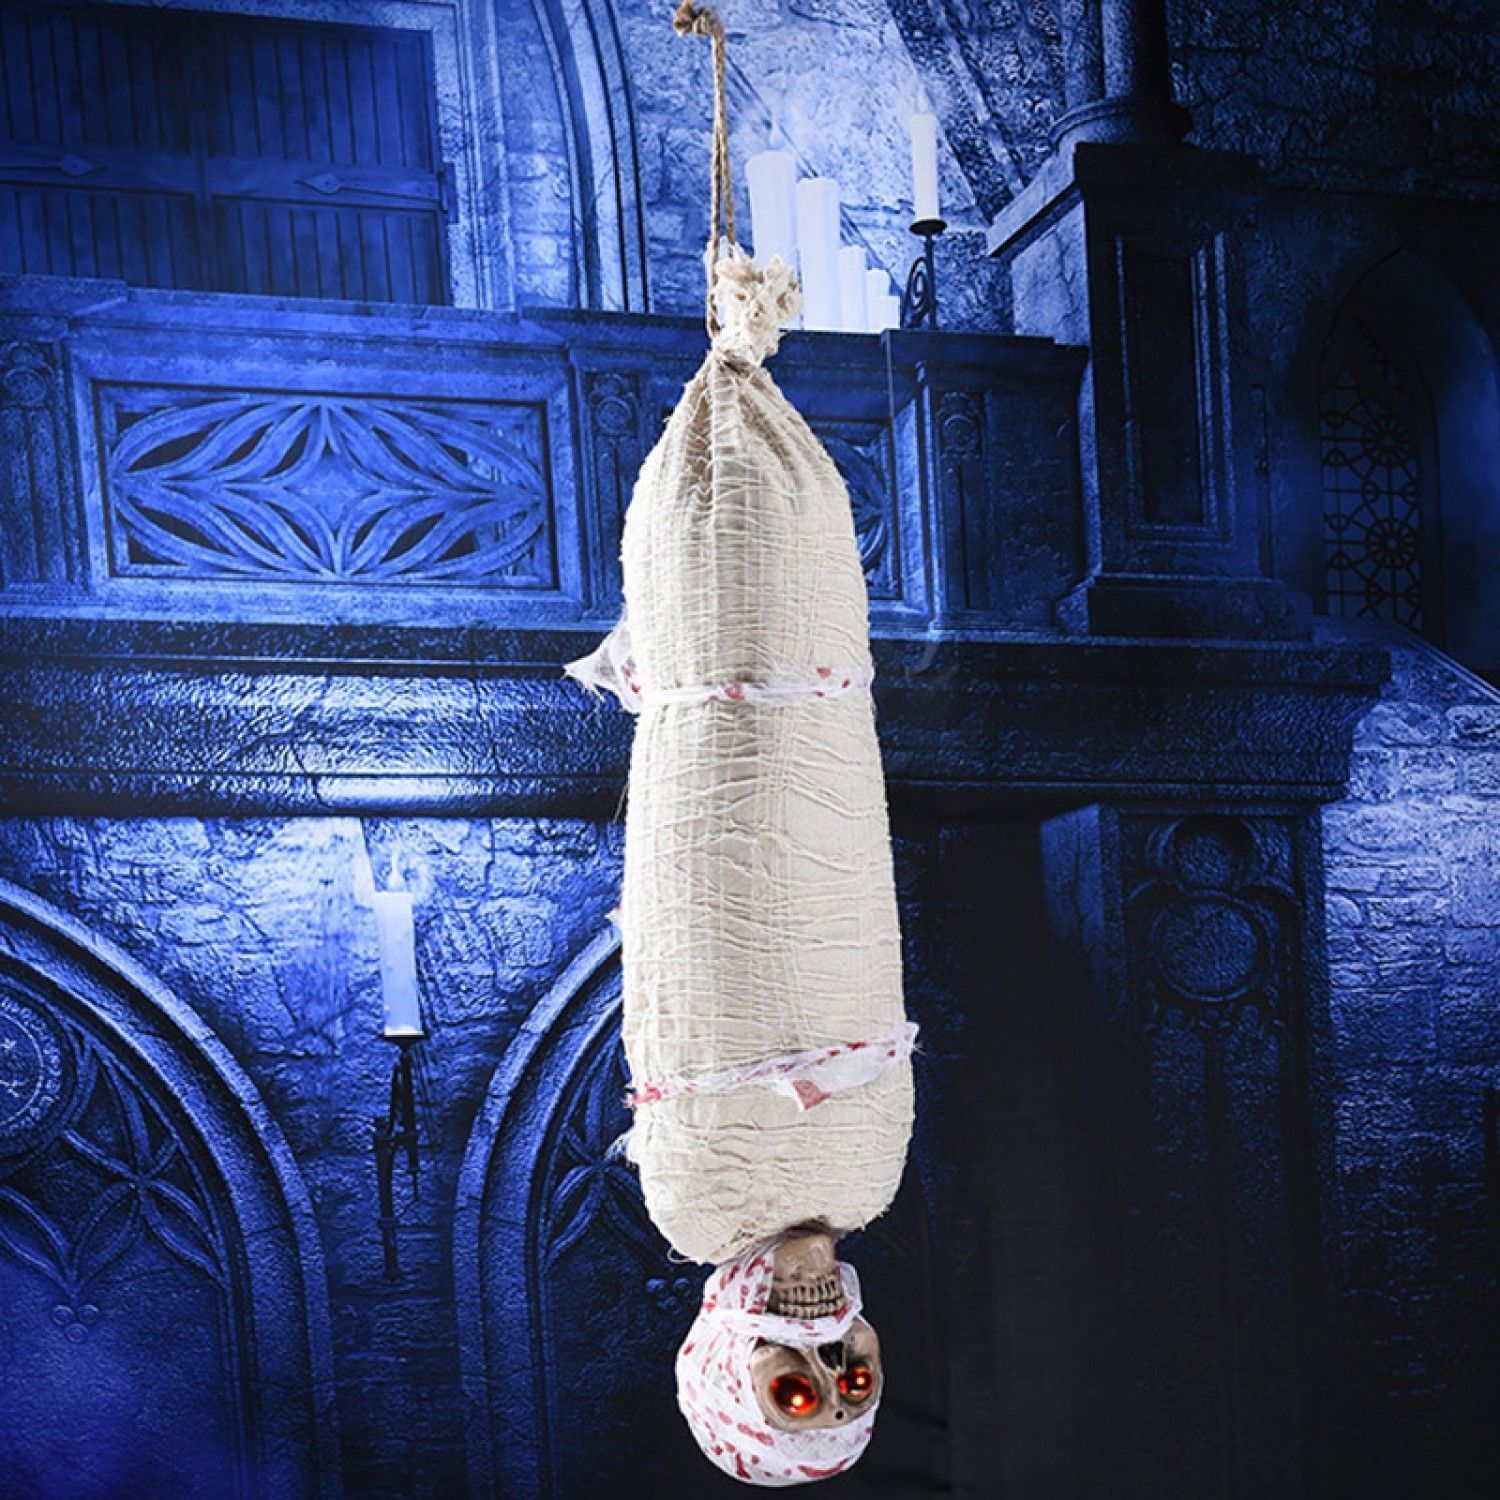 Halloween Decoration House Bar Party Prop Scary Thrilling Decor Hang Mummy Ghost